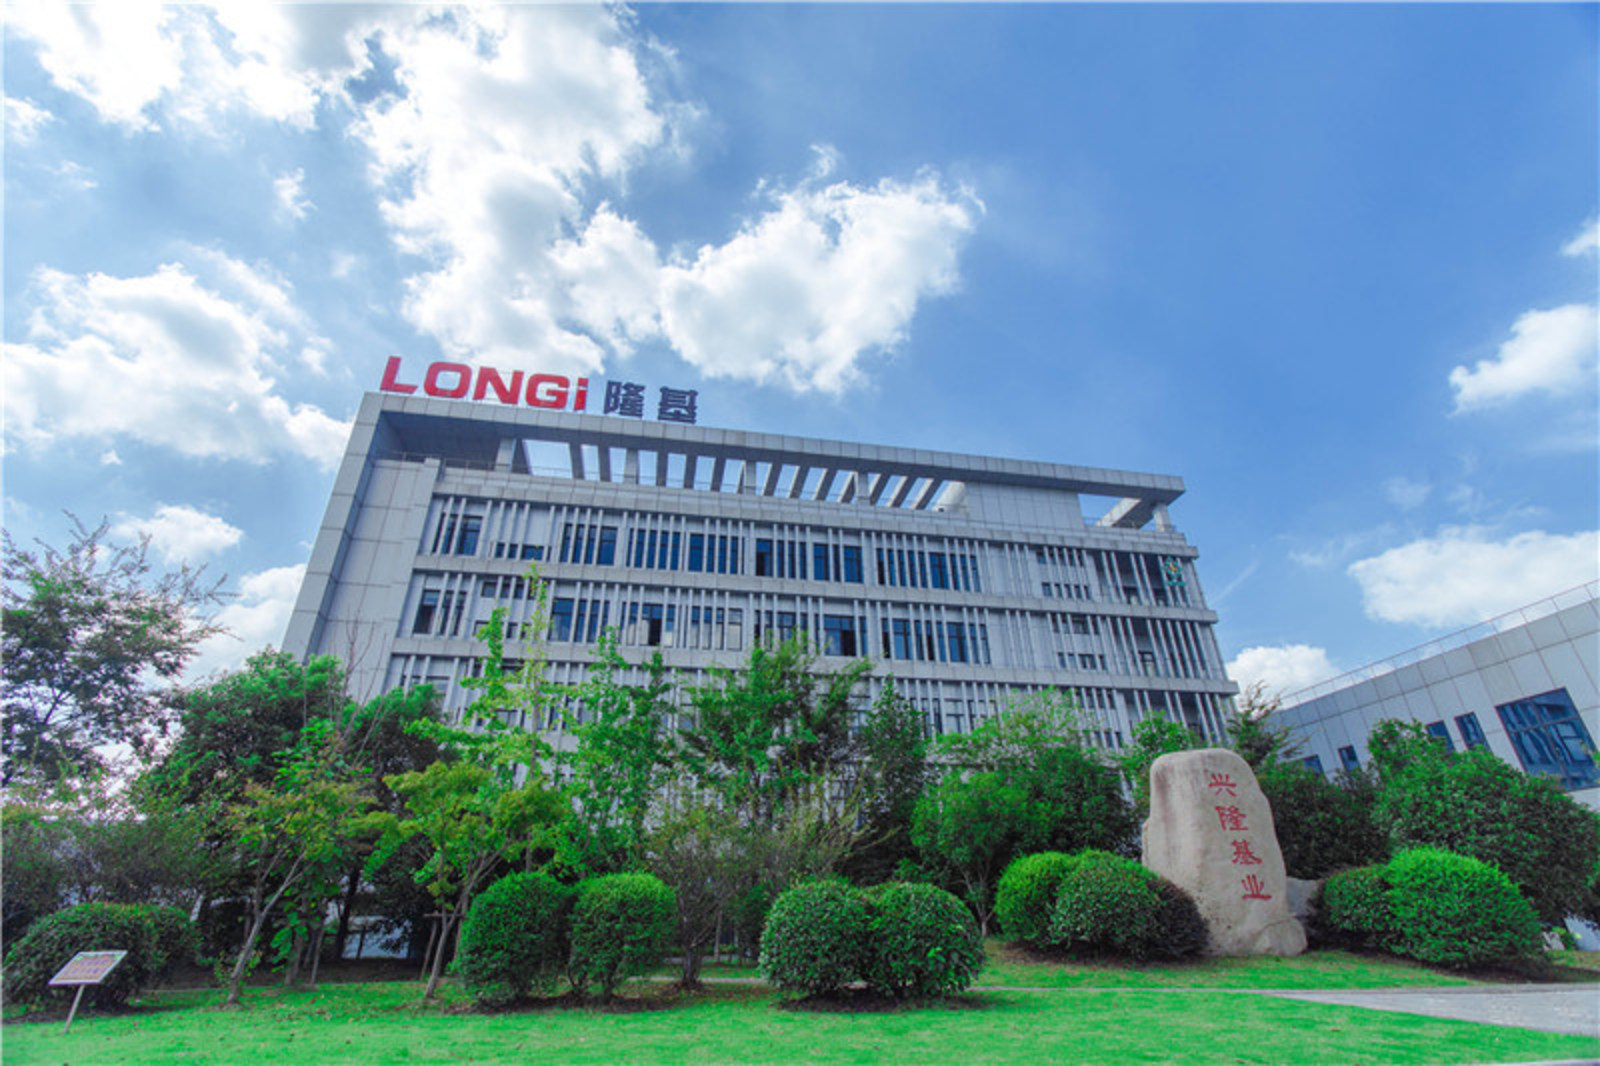 LONGi has insisted there is no current patent infringement lawsuit between it and Hanwha Q CELLS regarding these patents. Image: LONGi